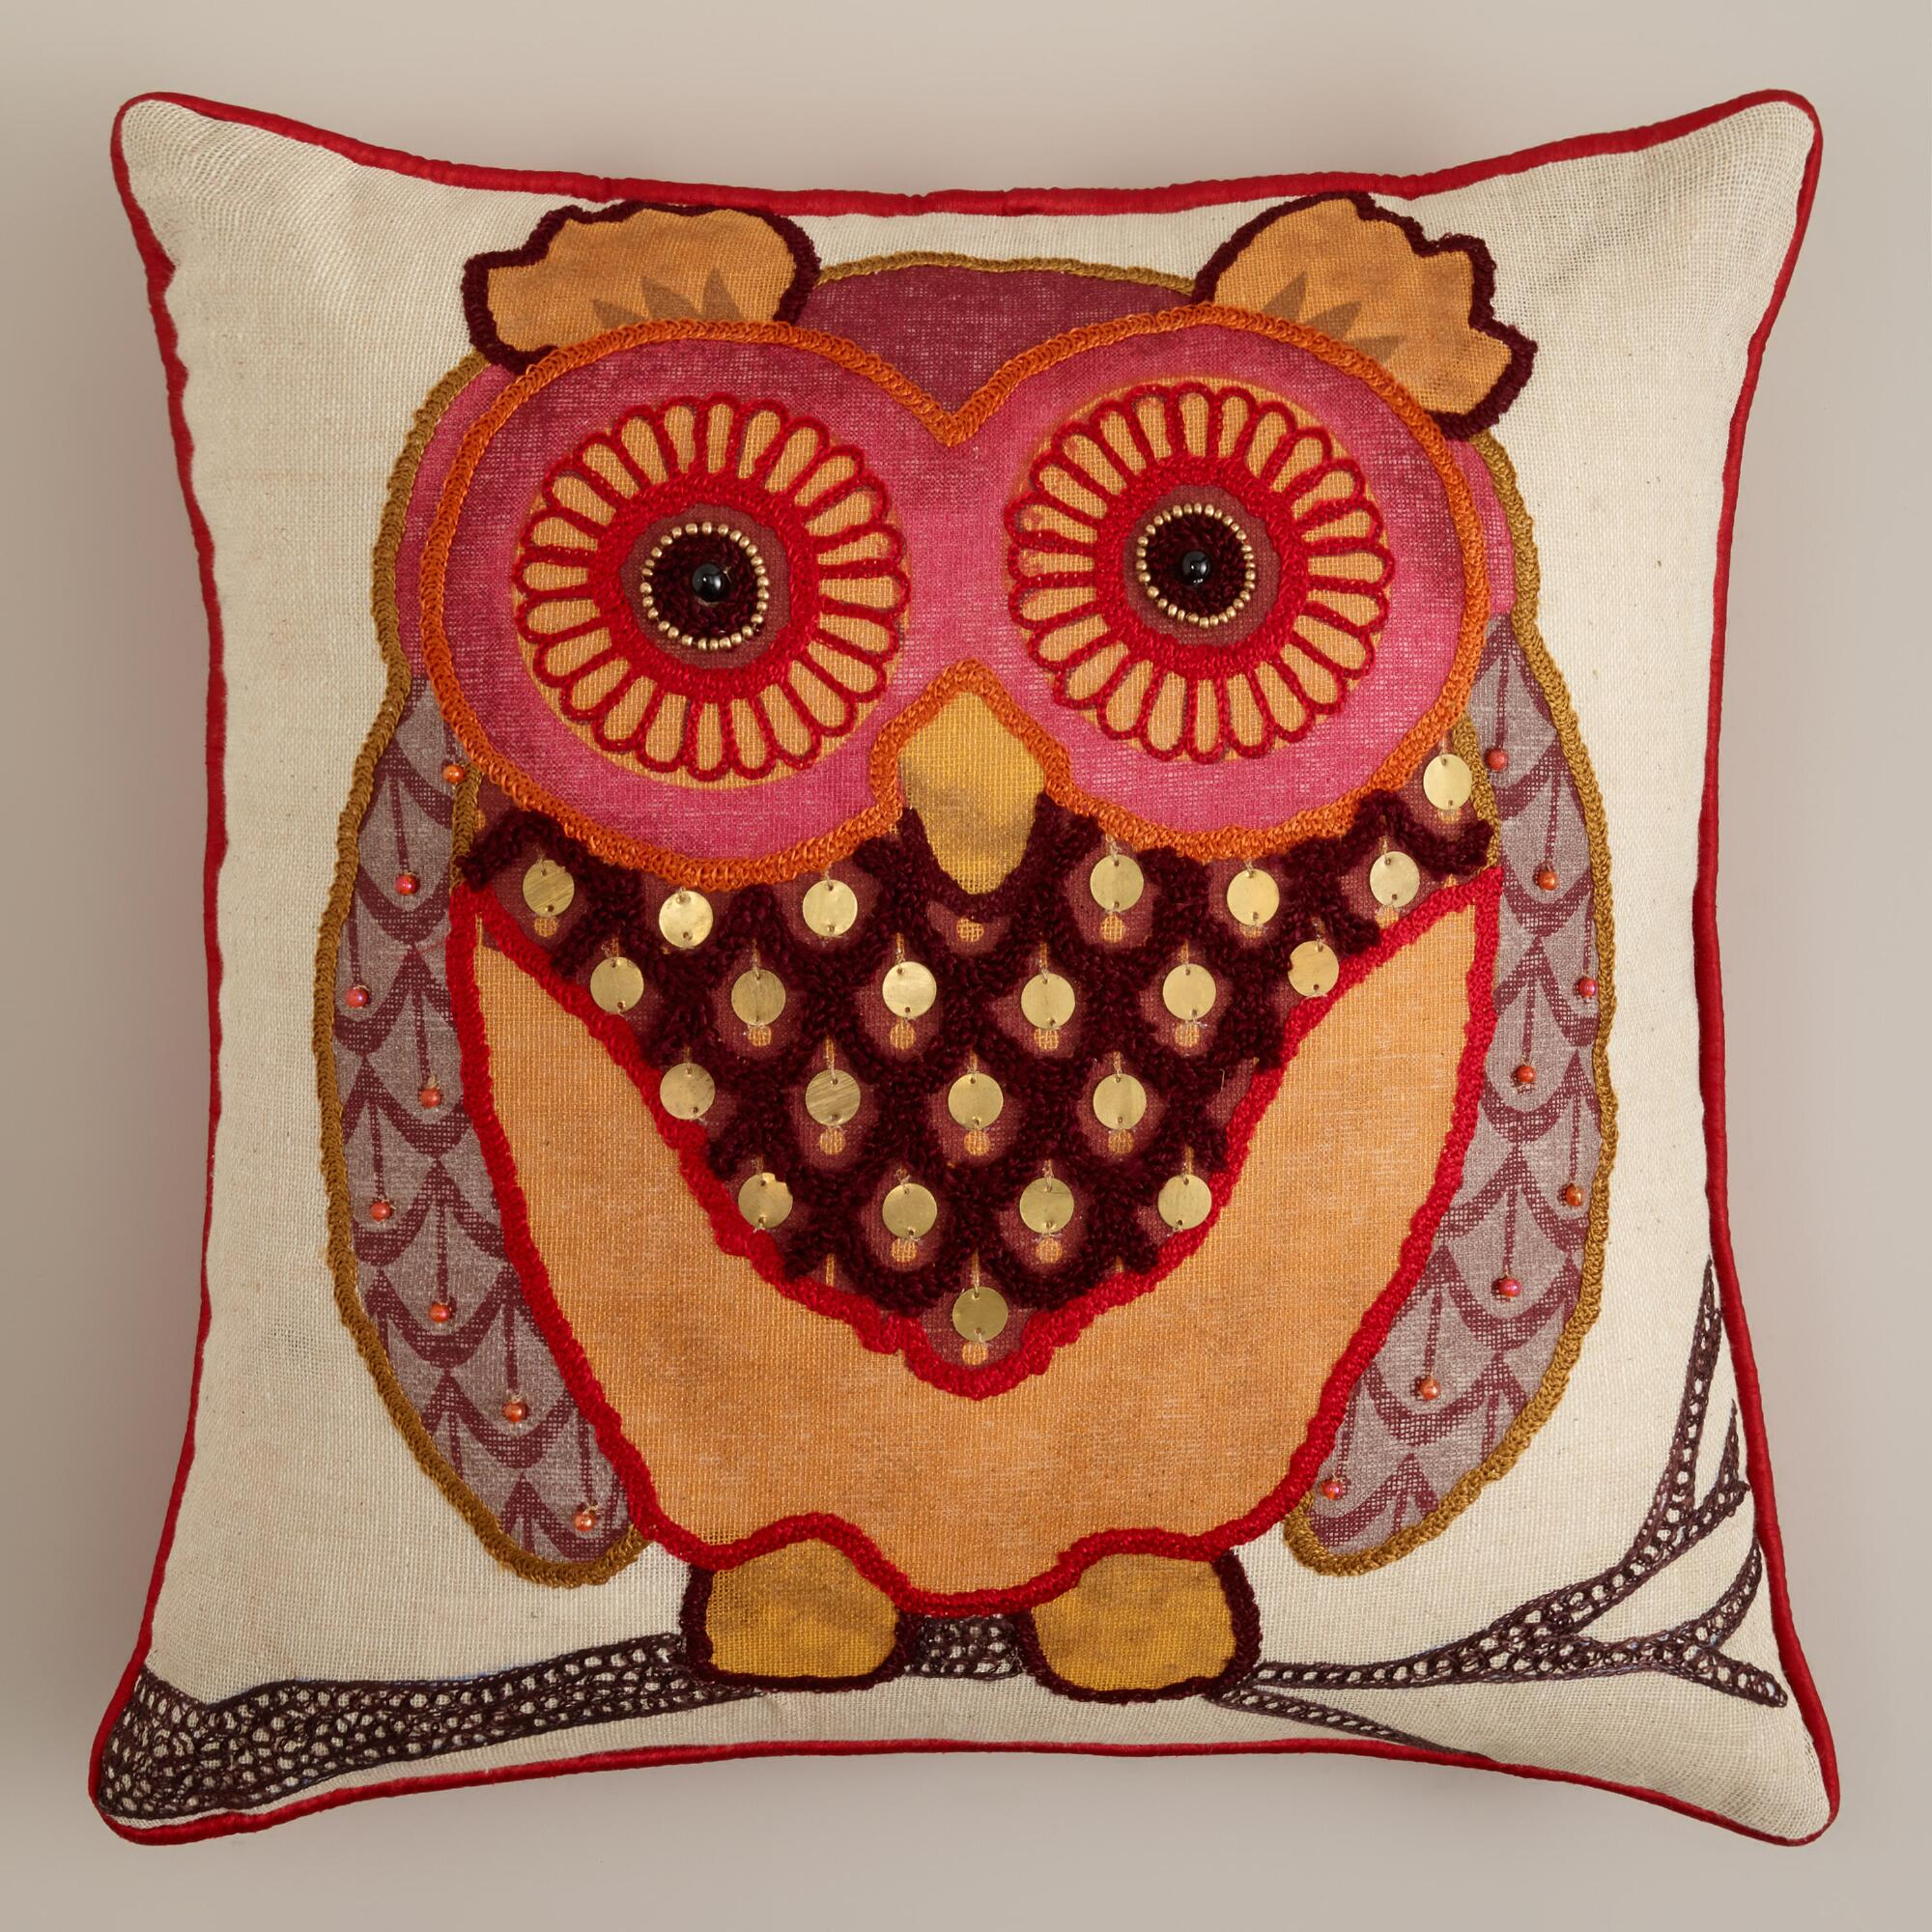 Throw Pillows With Owls : Furniture, Home Decor, Rugs, Unique Gifts World Market